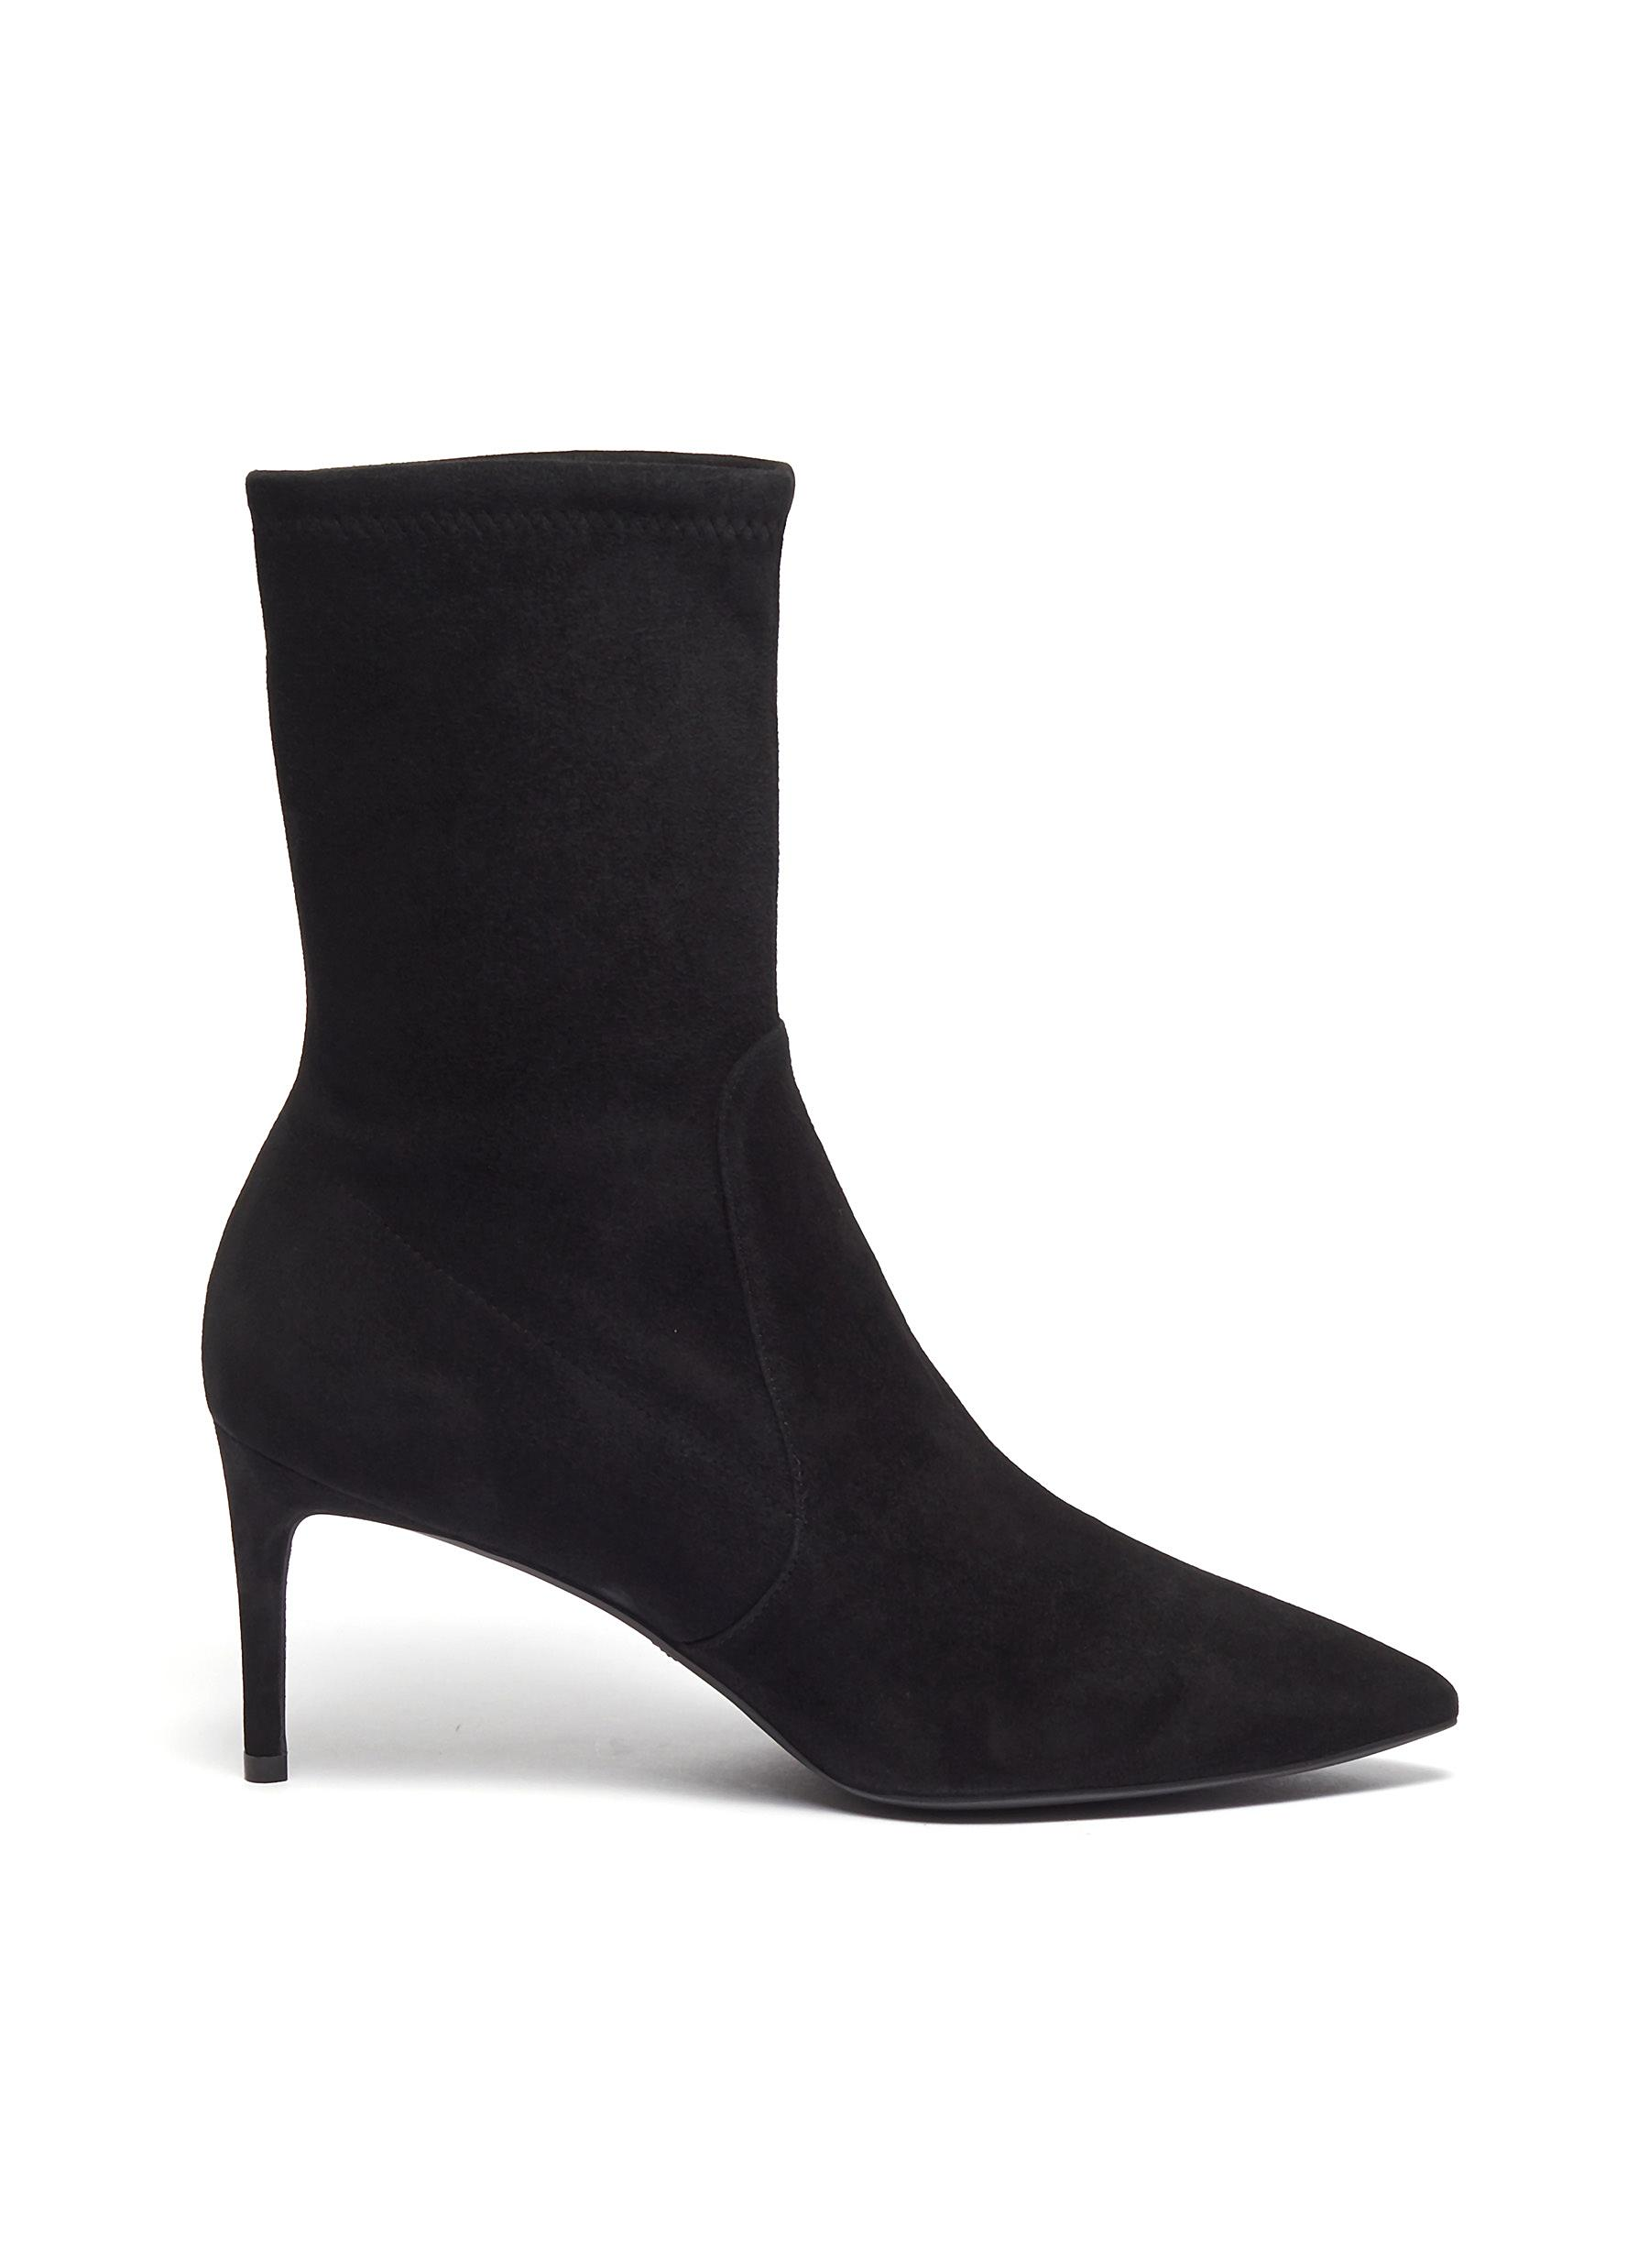 Wren stretch suede ankle boots by Stuart Weitzman